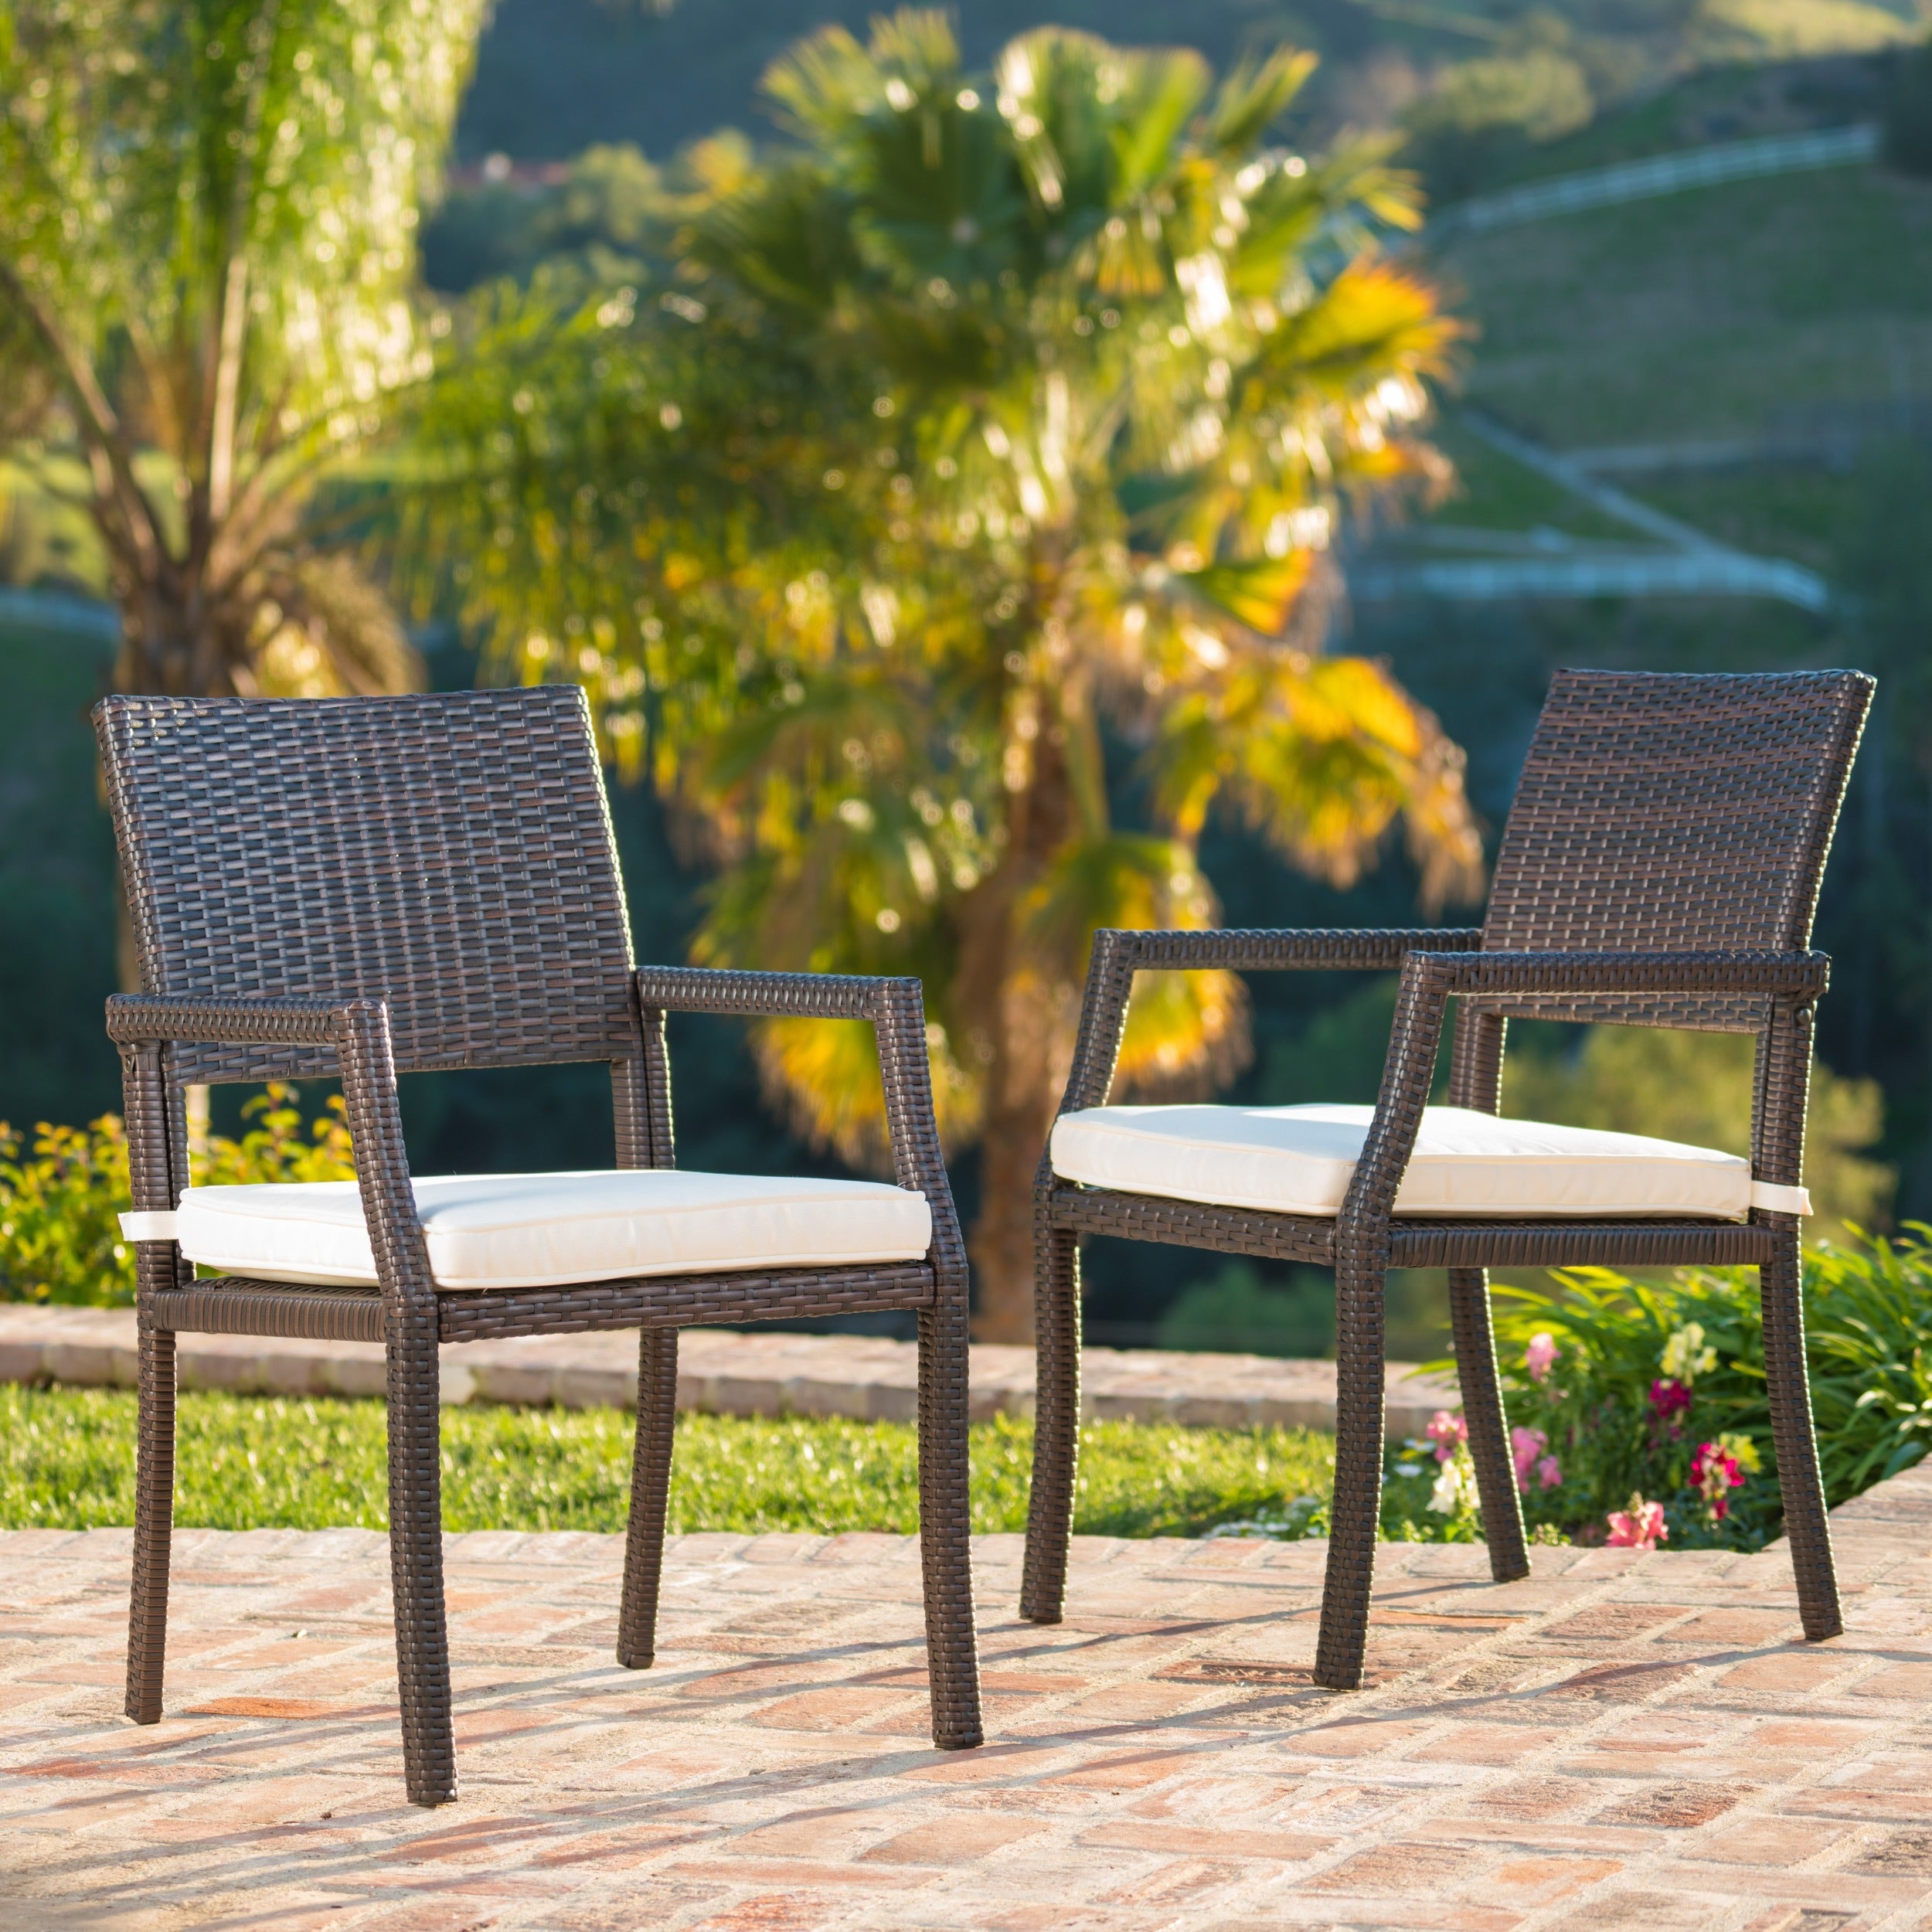 df patio set of inspirational furniture clearance wicker resin